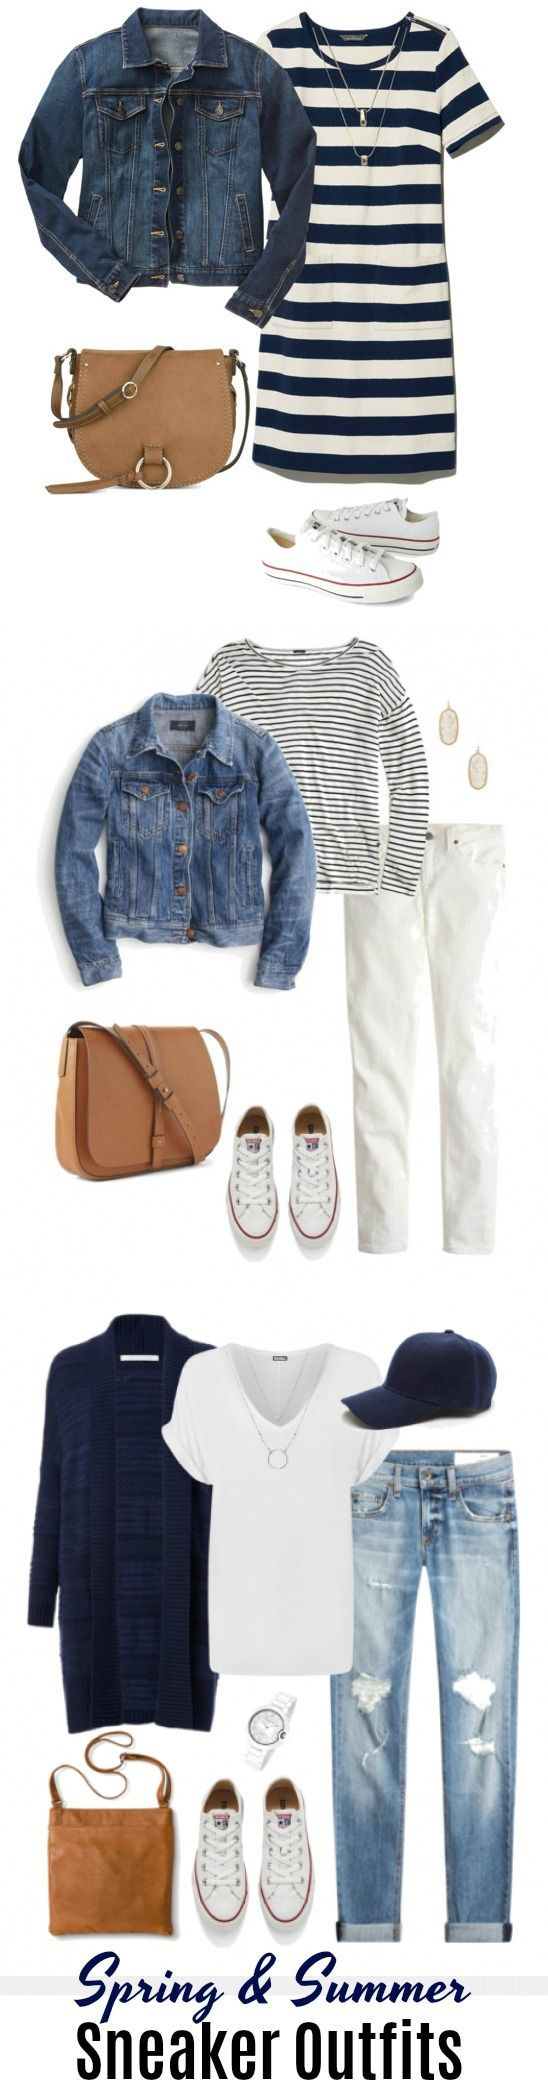 These spring and summer sneaker outfits for women are about both comfort and style. Because casual does not mean sloppy.